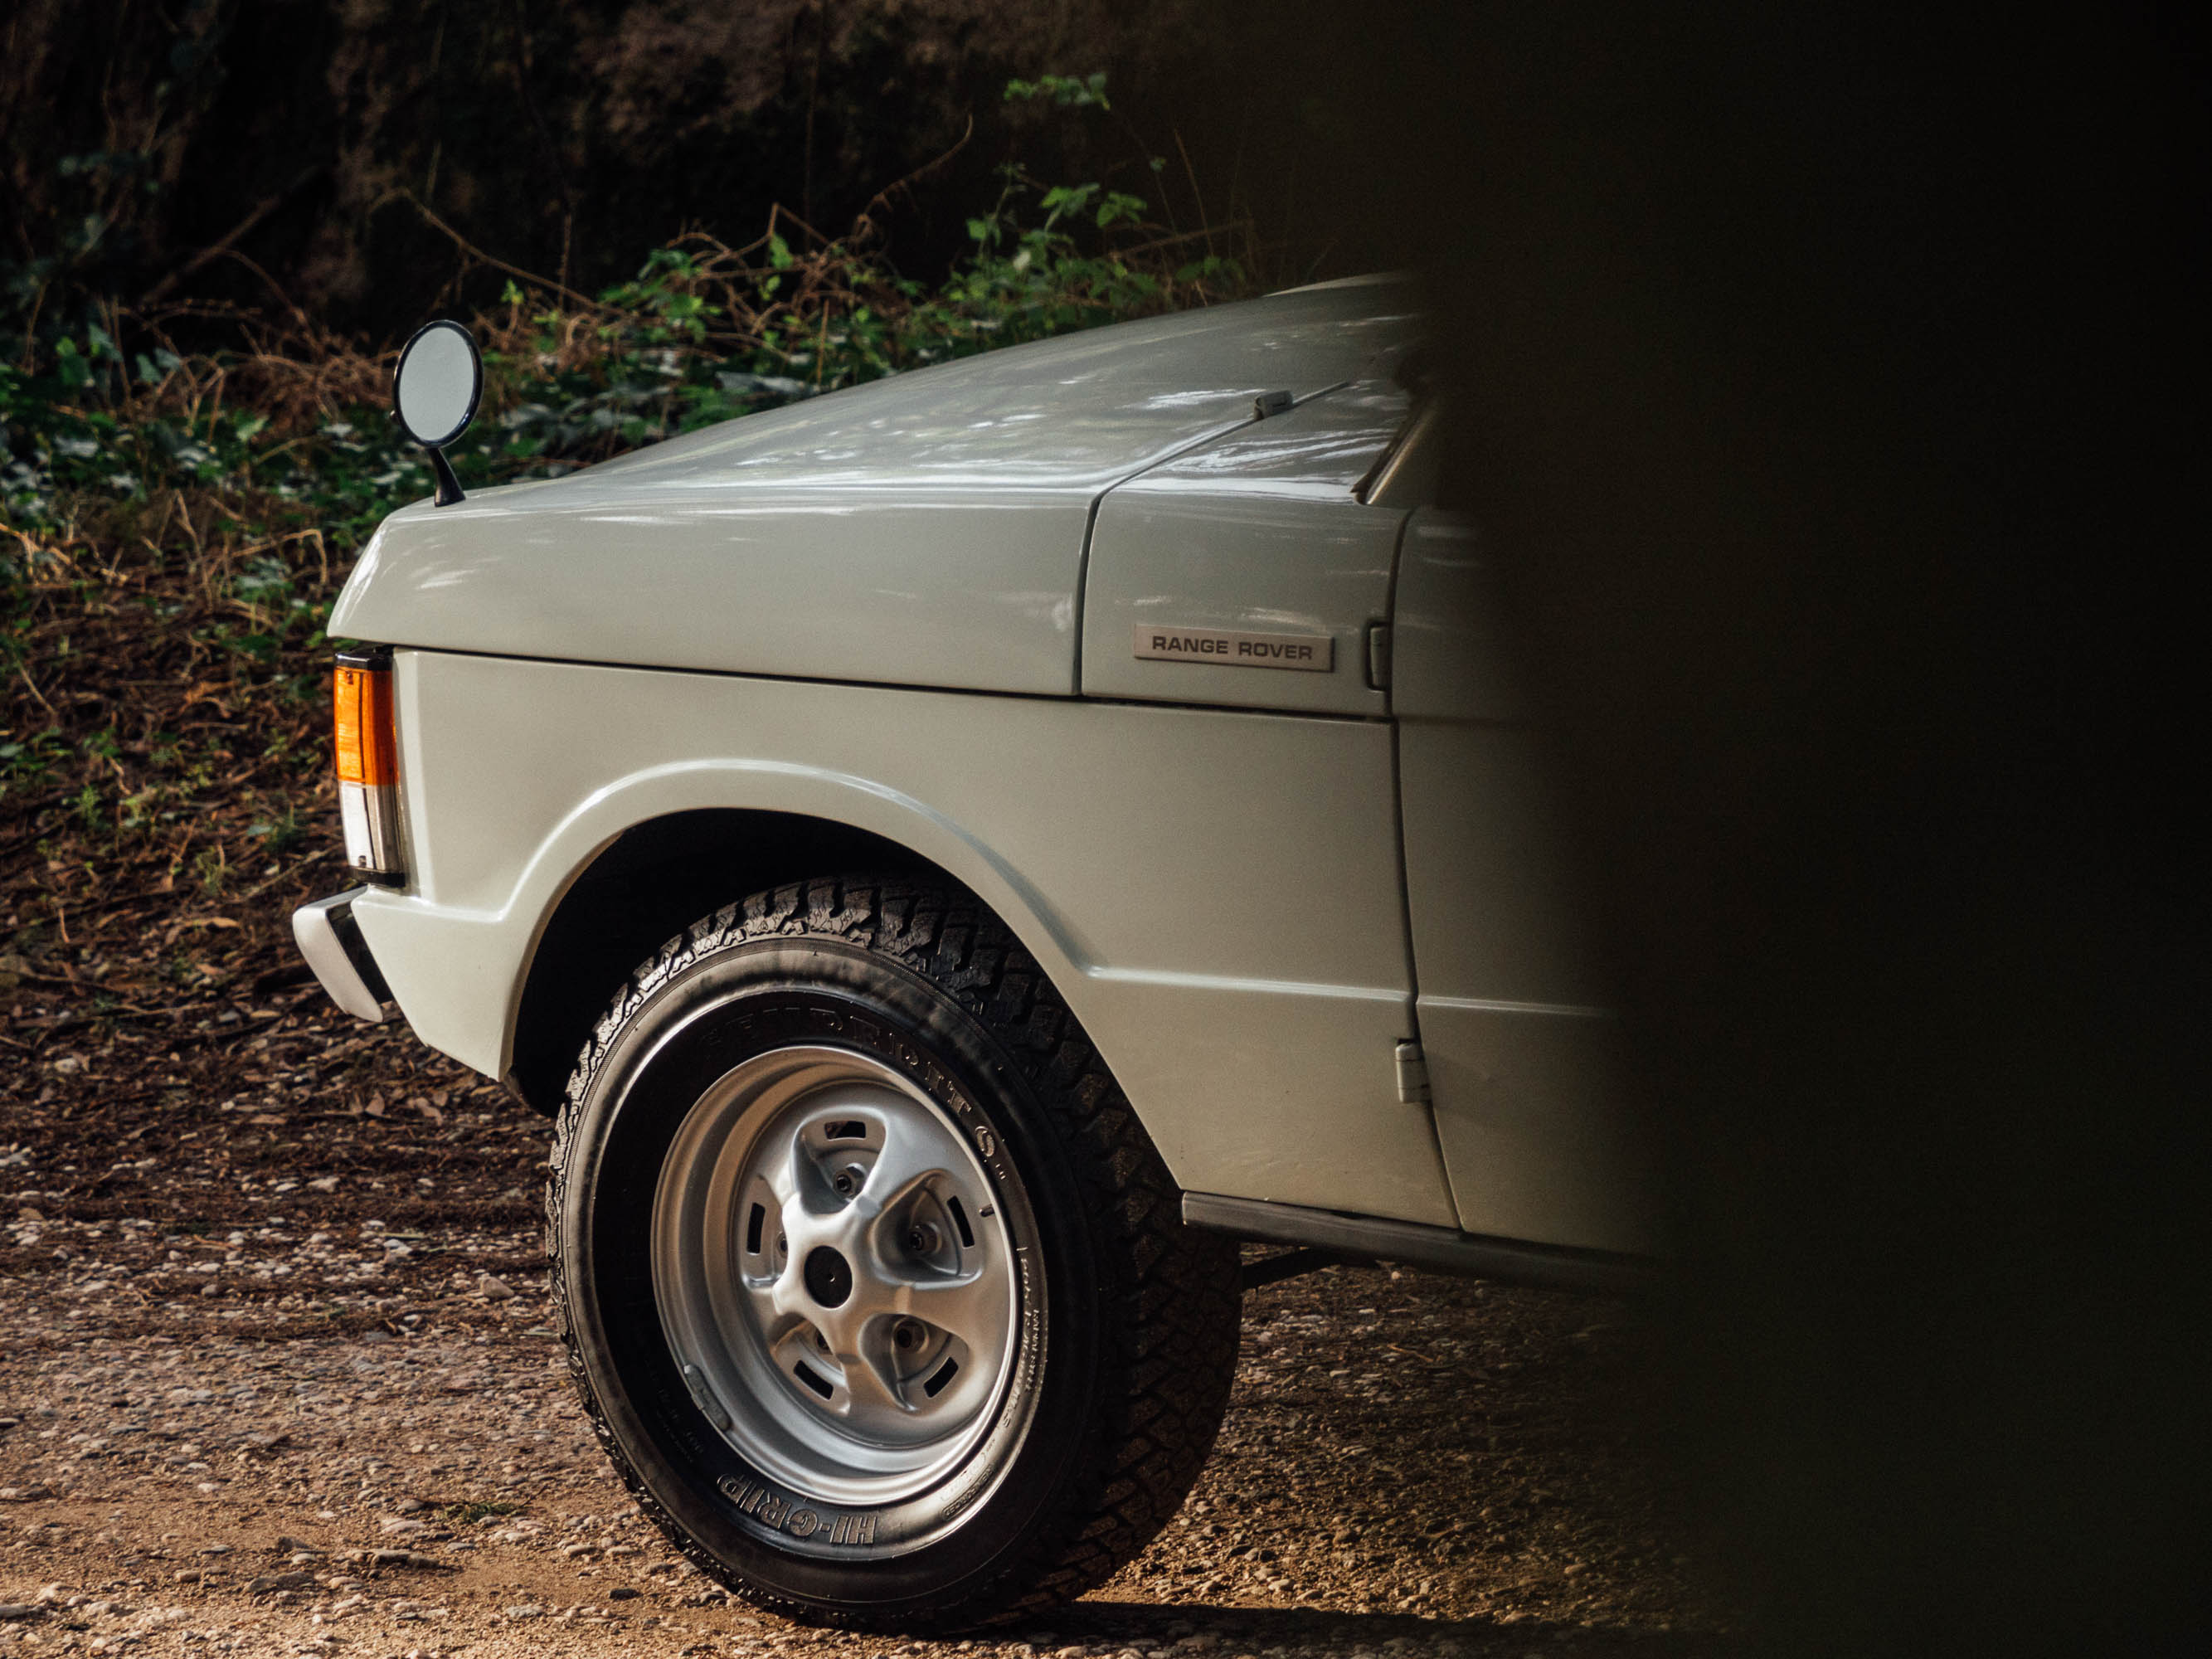 Featured Vehicle 1977 Land Rover Range Rover – Expedition Portal